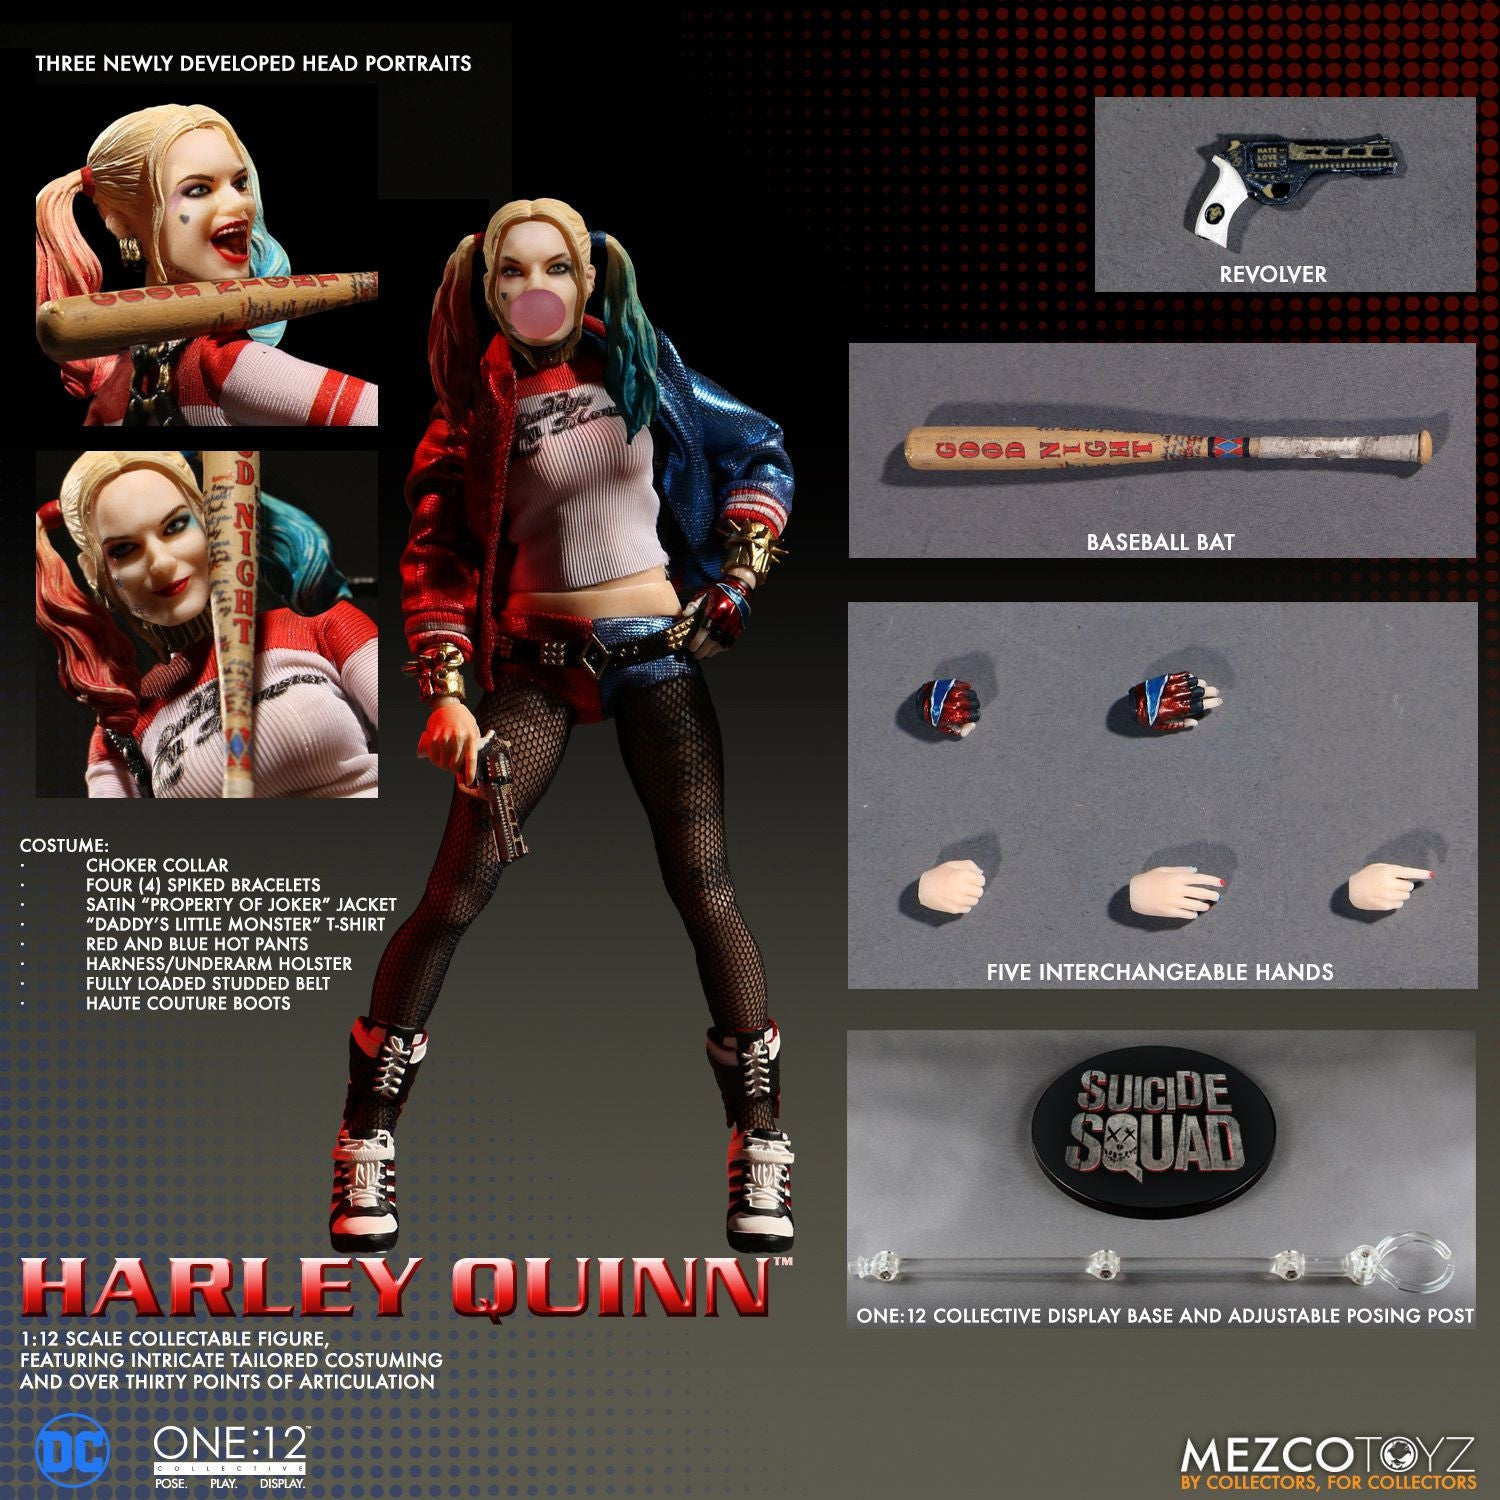 SUICIDE SQUAD HARLEY QUINN ONE:12 COLLECTIVE